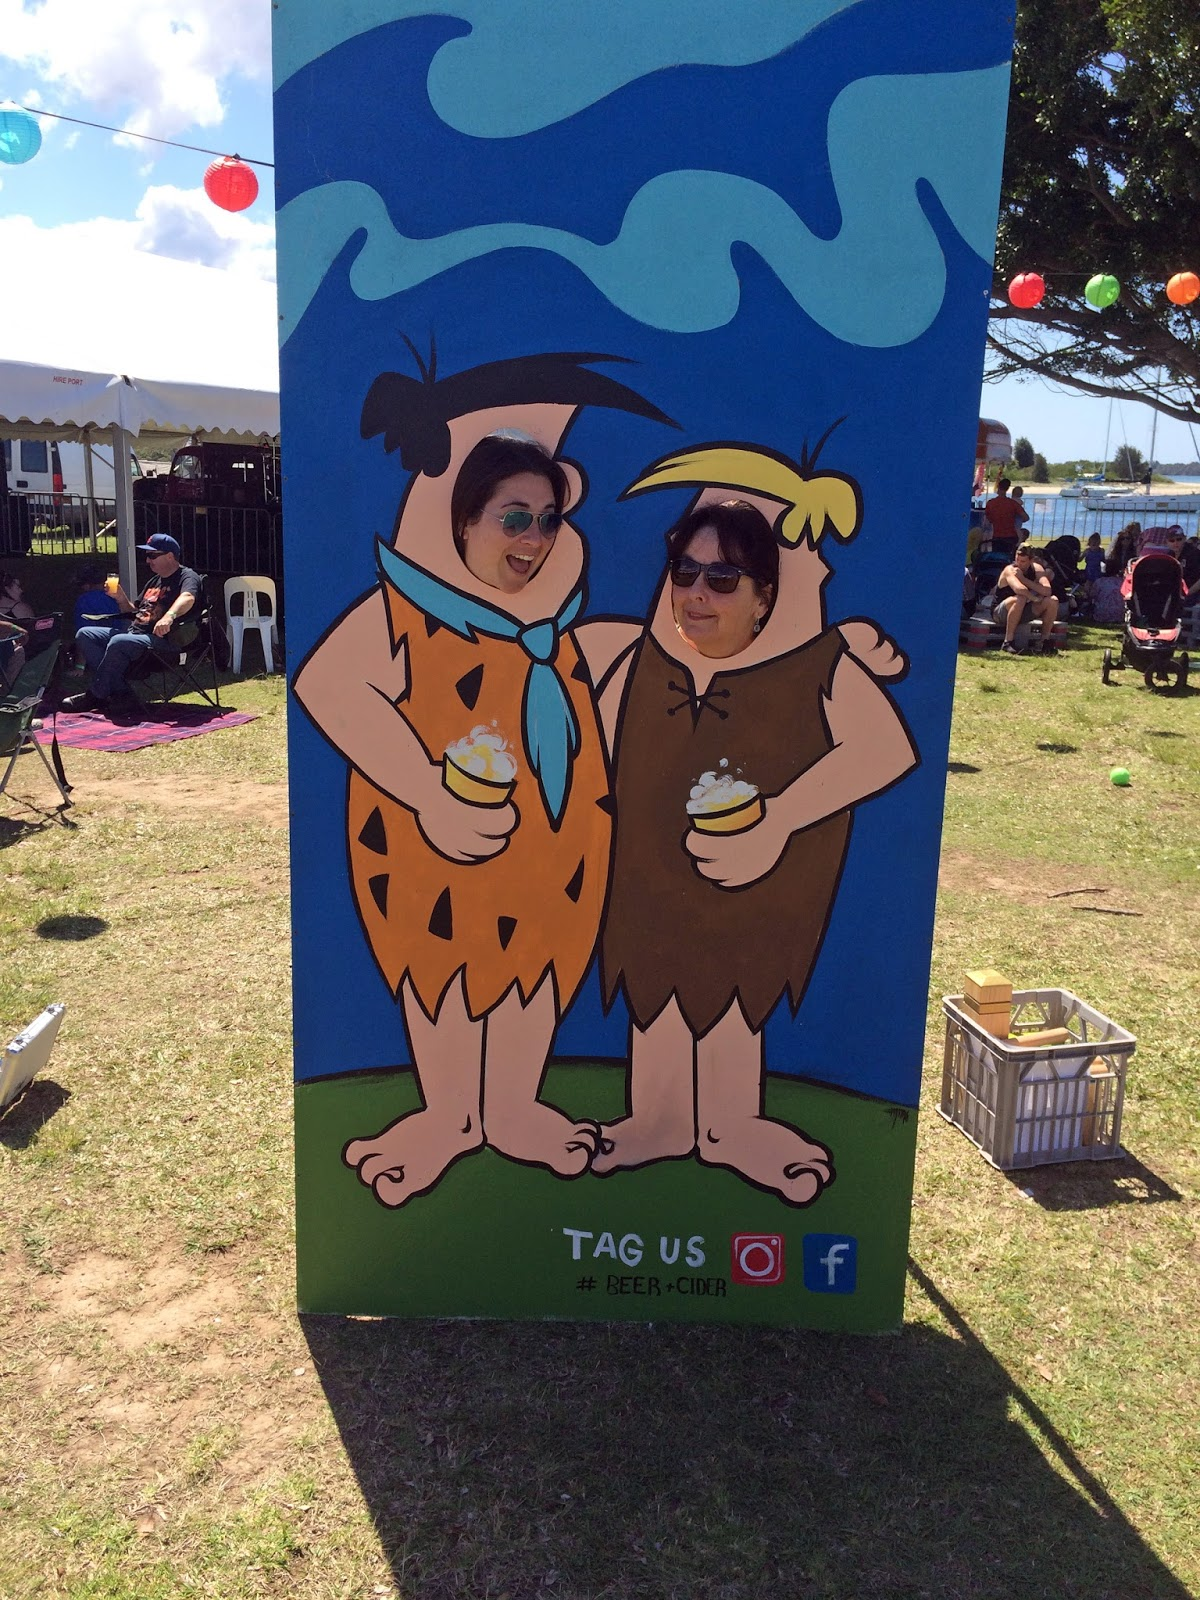 Port Macquarie Beer and Cider Festival Cutouts Fun